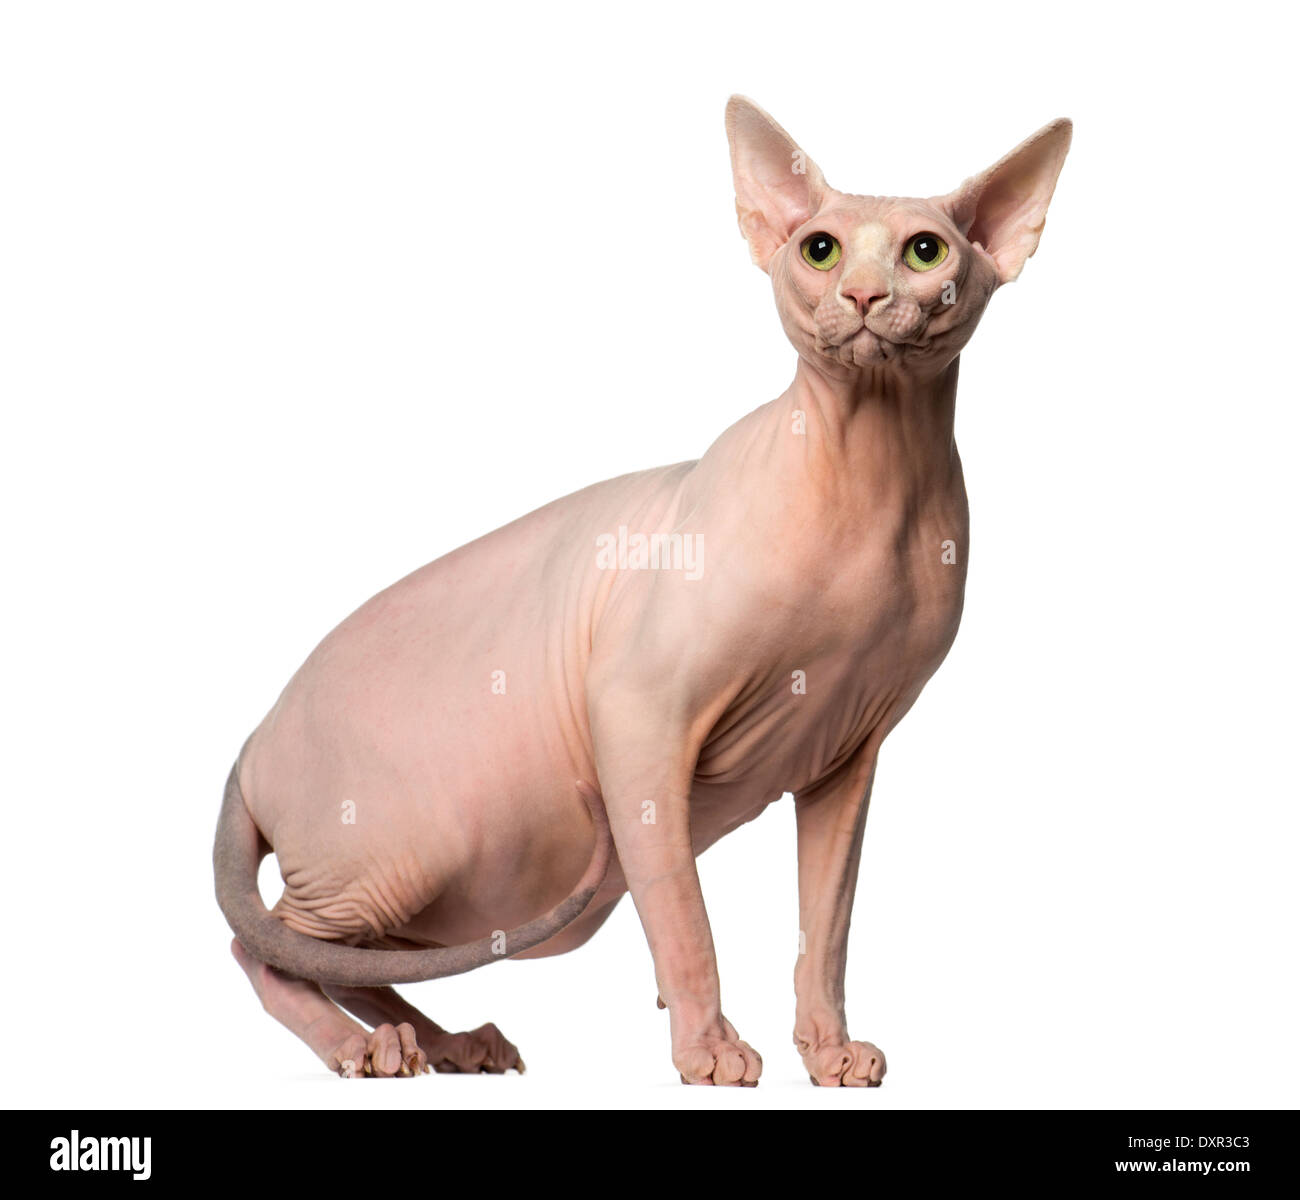 Sphynx looking up against white background - Stock Image